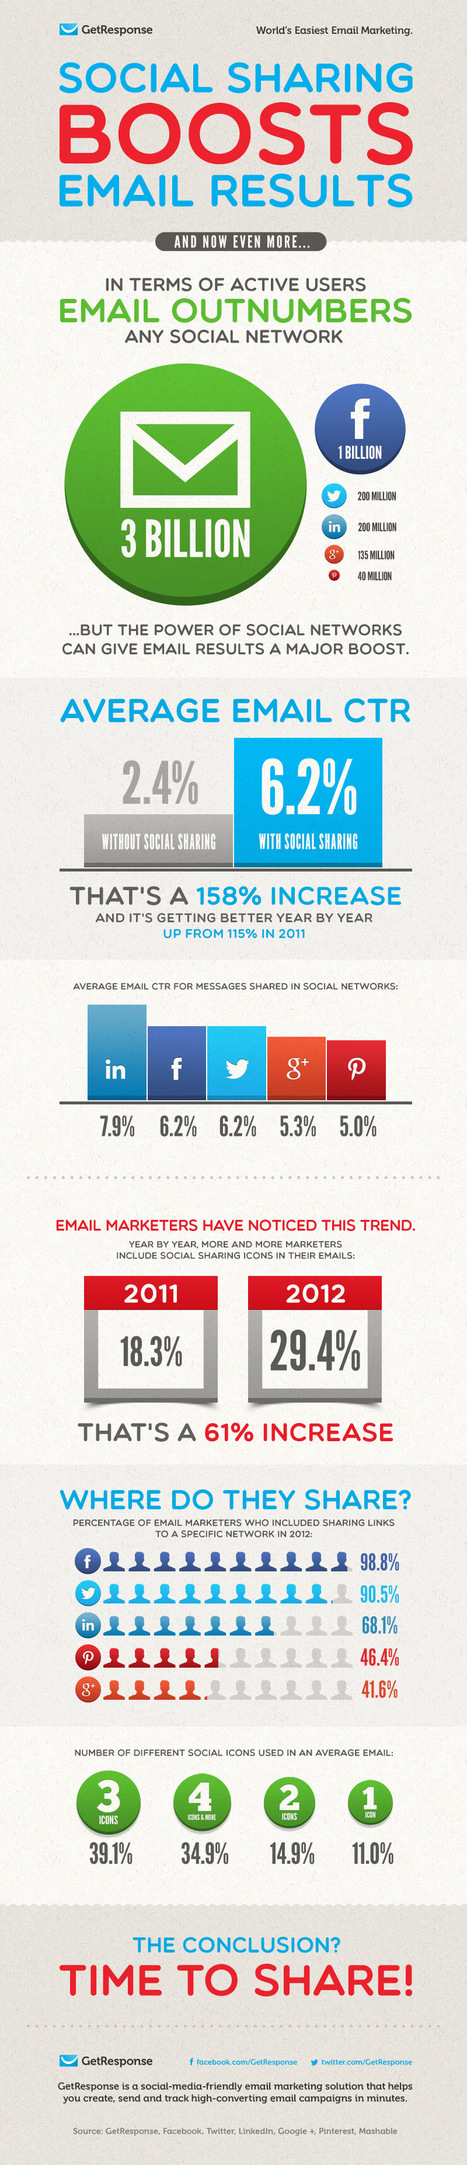 Social Sharing Boosts Email Marketing Results By 158% [INFOGRAPHIC] - AllTwitter | Better know and better use Social Media today (facebook, twitter...) | Scoop.it